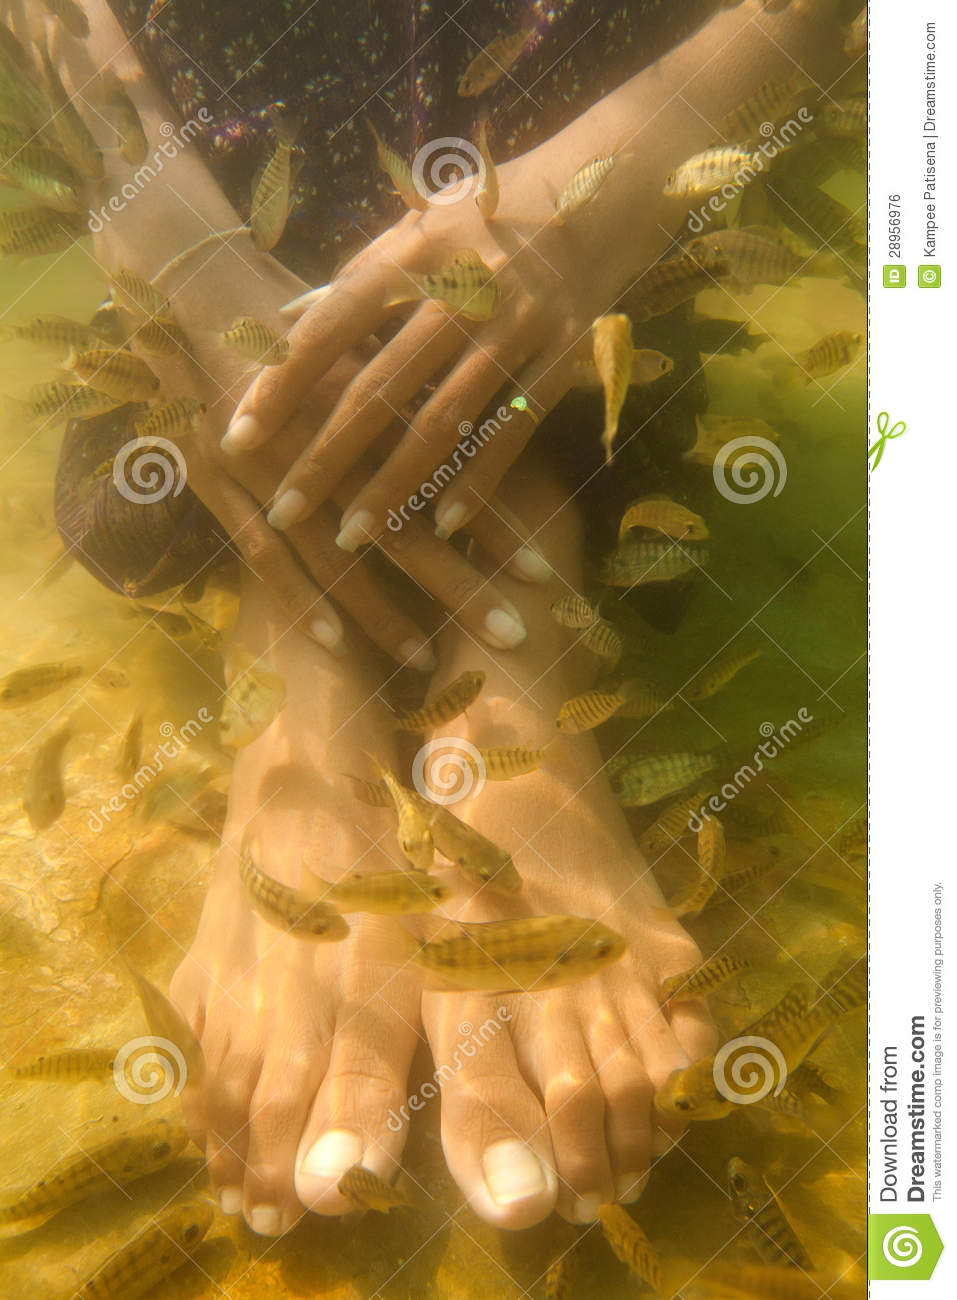 Fish spa pedicure treatment royalty free stock image for Fish spa treatment